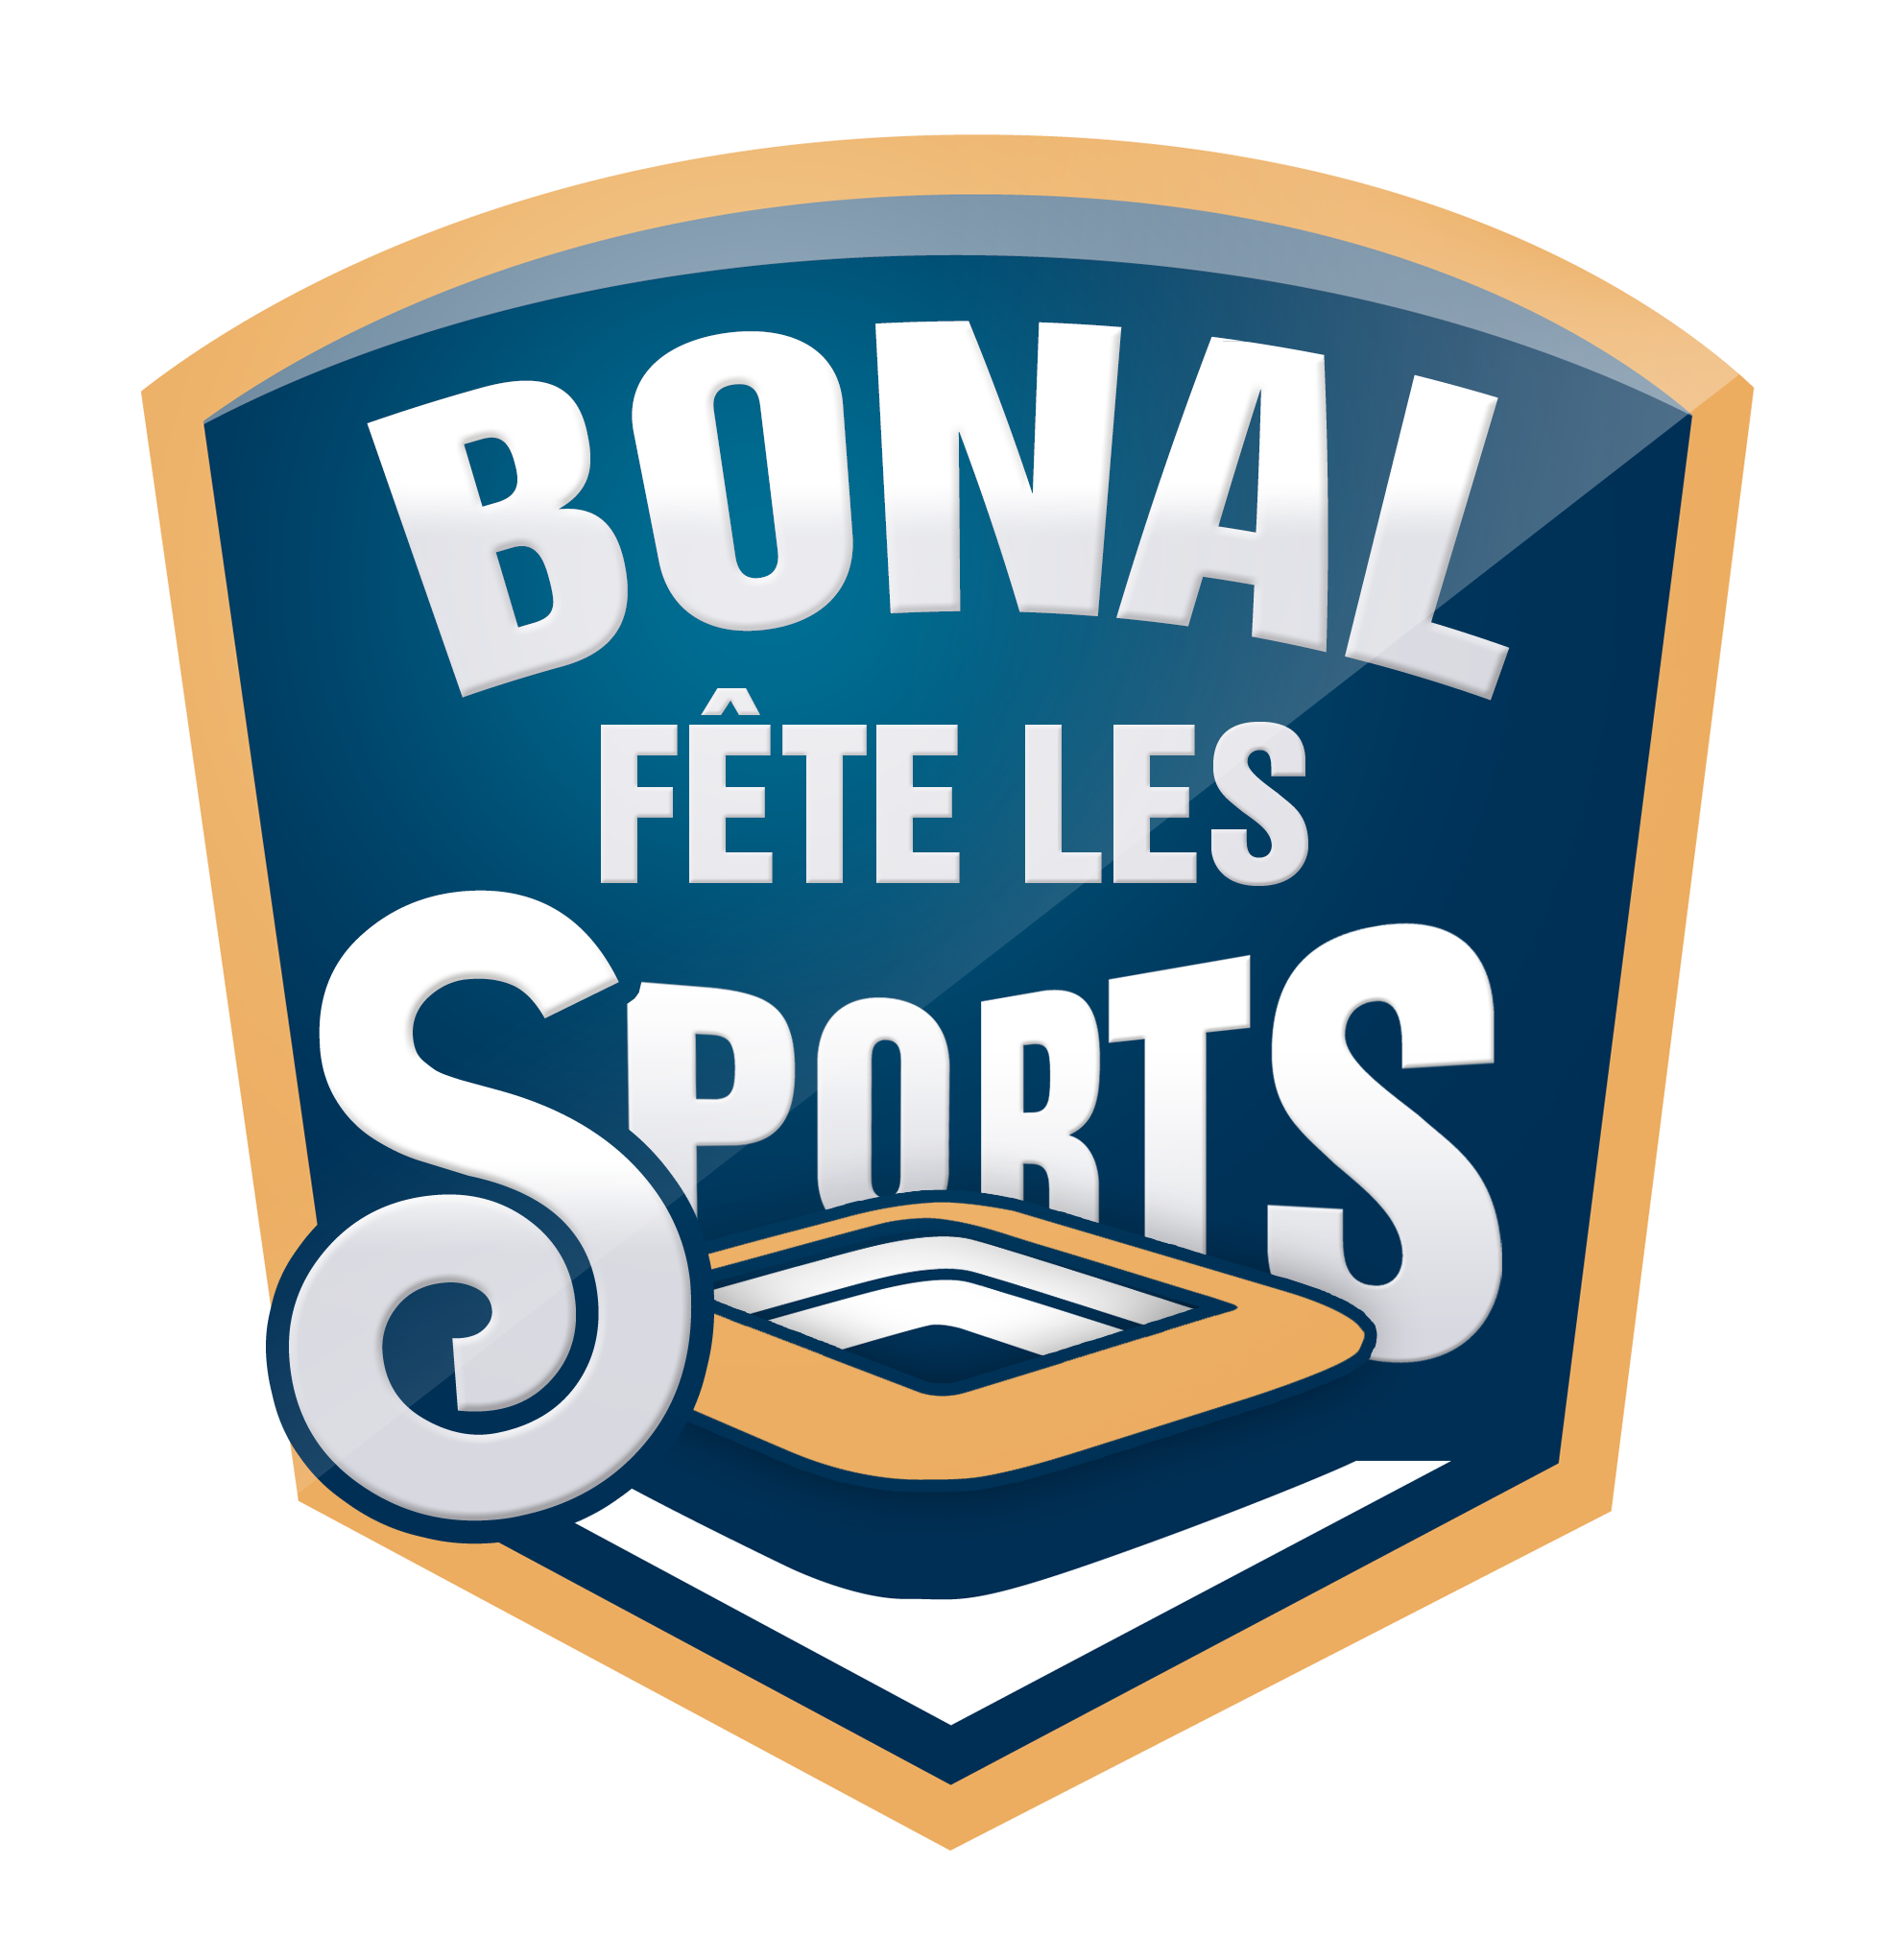 https://www.bcetupes.info/wp-content/uploads/2016/05/blason-bonal-fete-les-sports.png